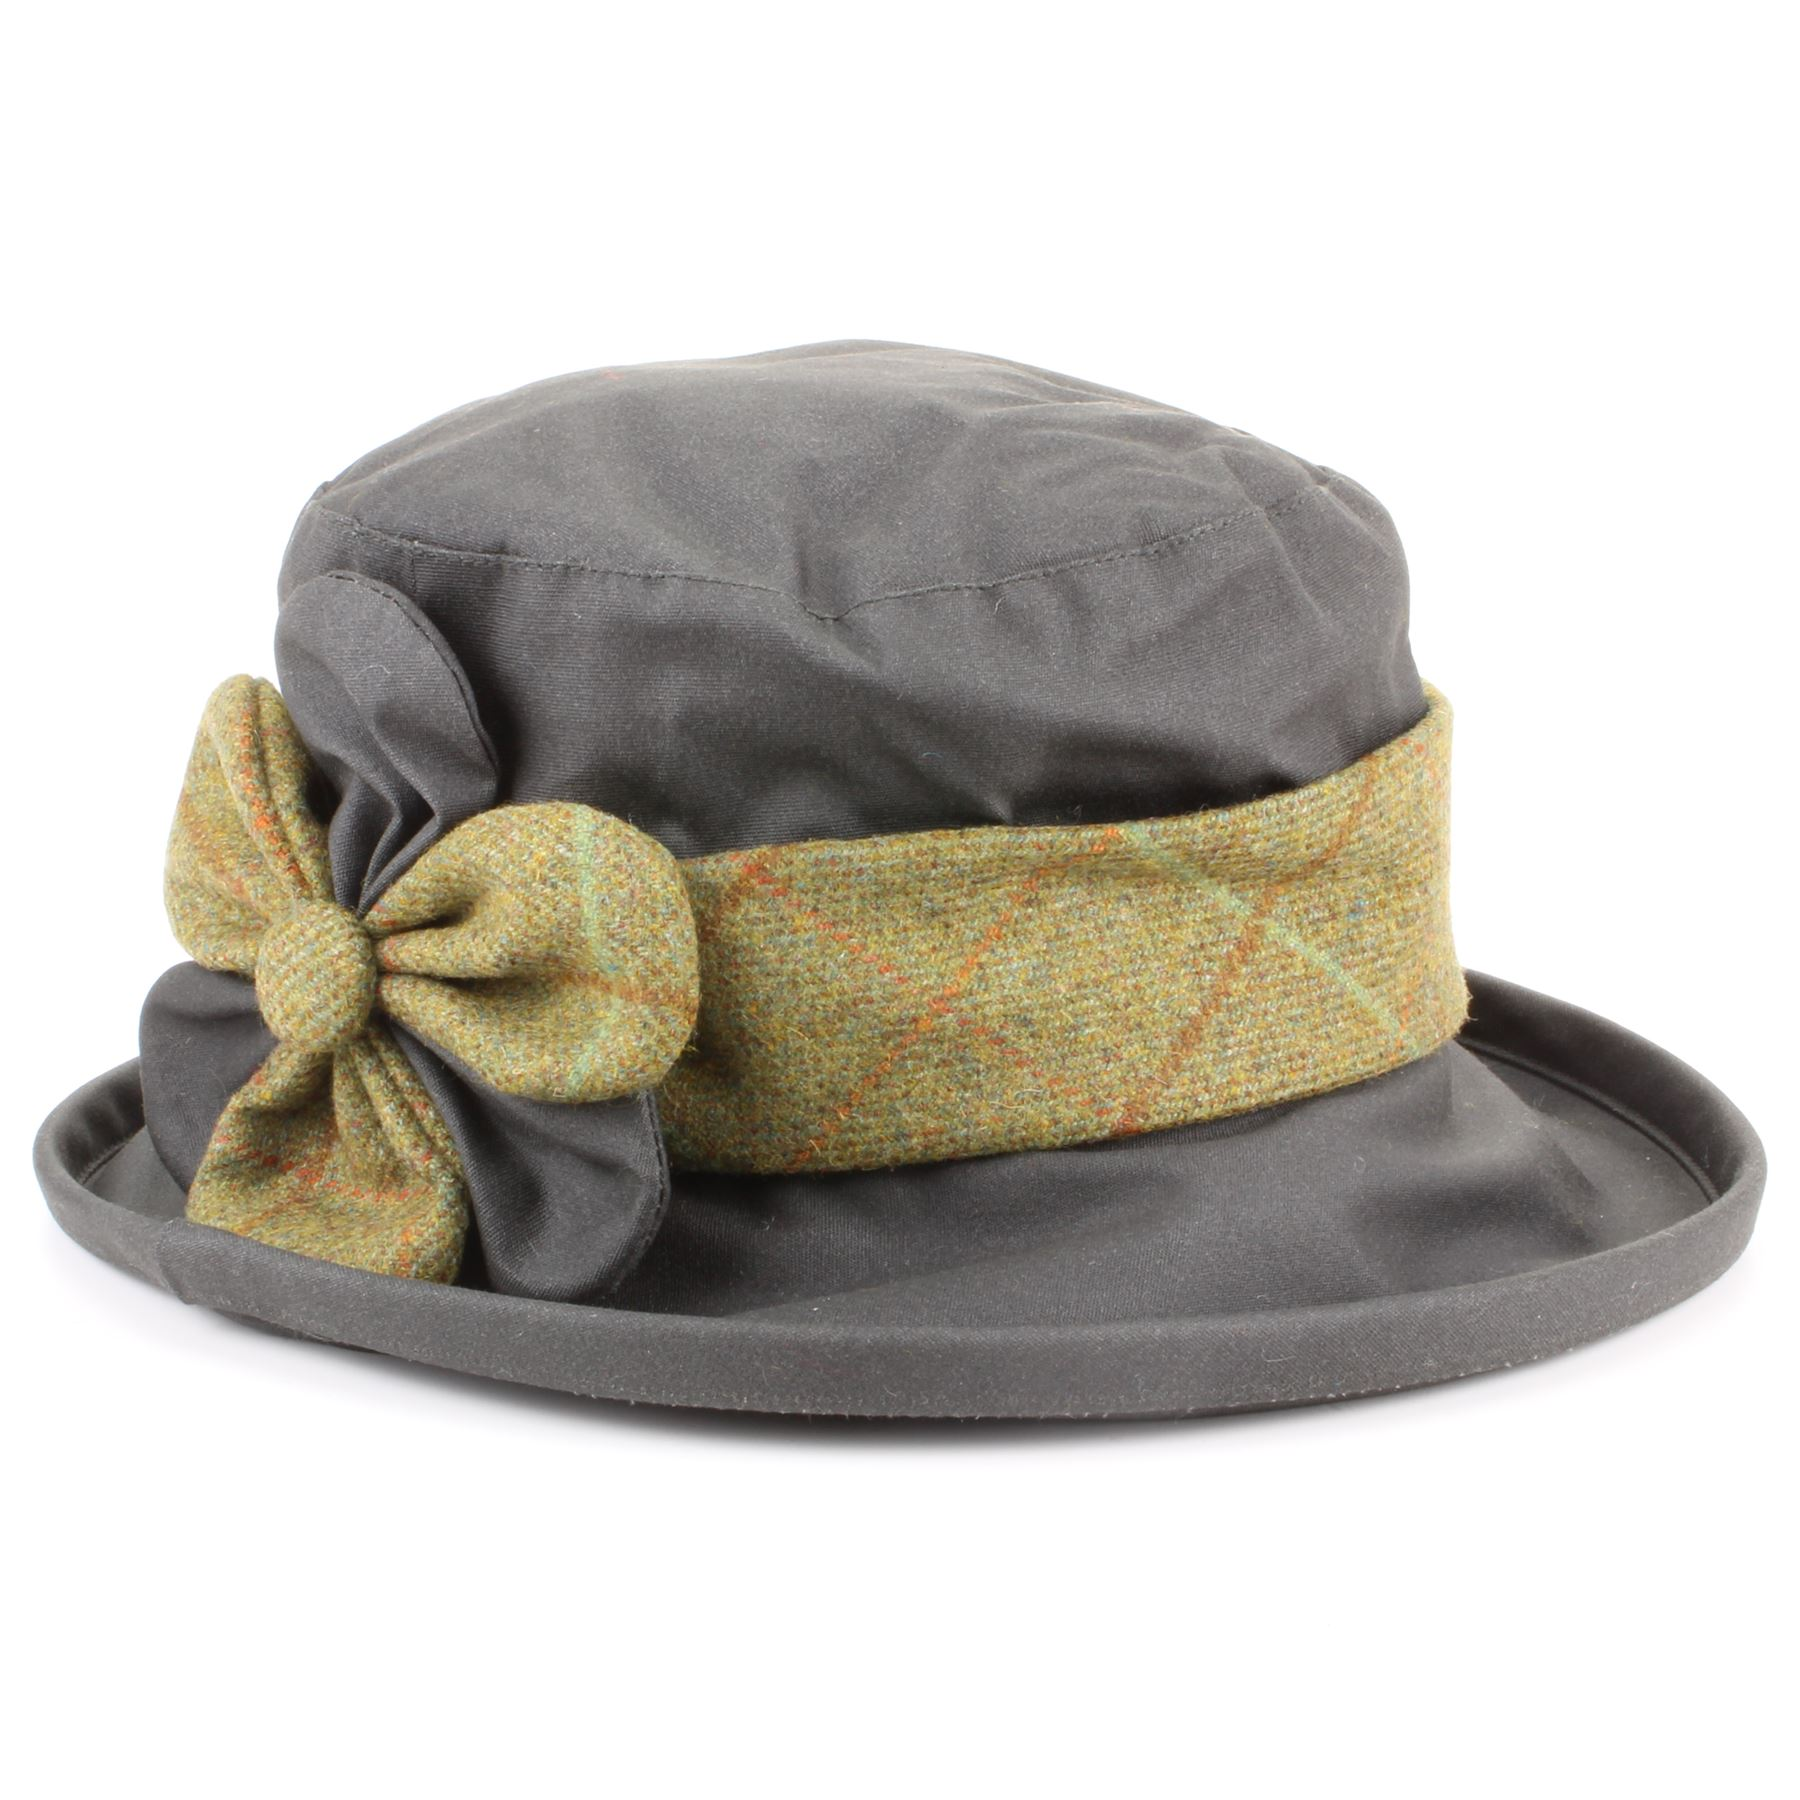 Details about Tweed Wax Hat Womens Ladies Flower Brown Green Band Brim  Water New Winter 0f32eaa6d66